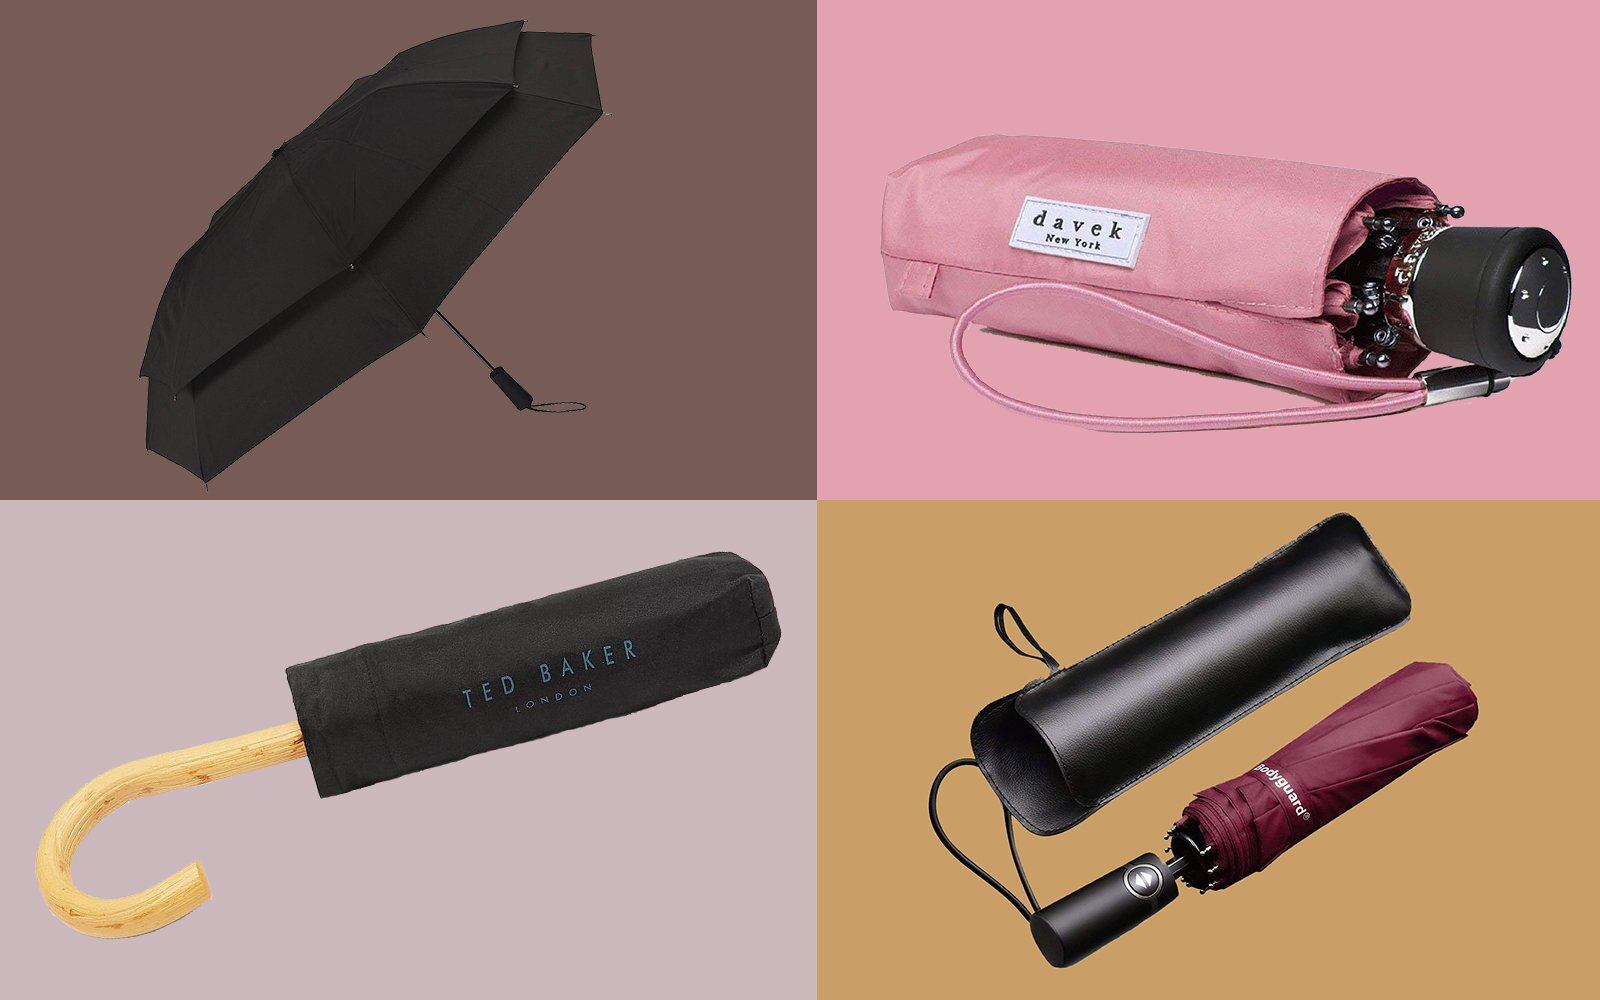 891a30c1f434f The Best Travel Umbrellas That Fit in Your Carry-on Bag | Travel + ...